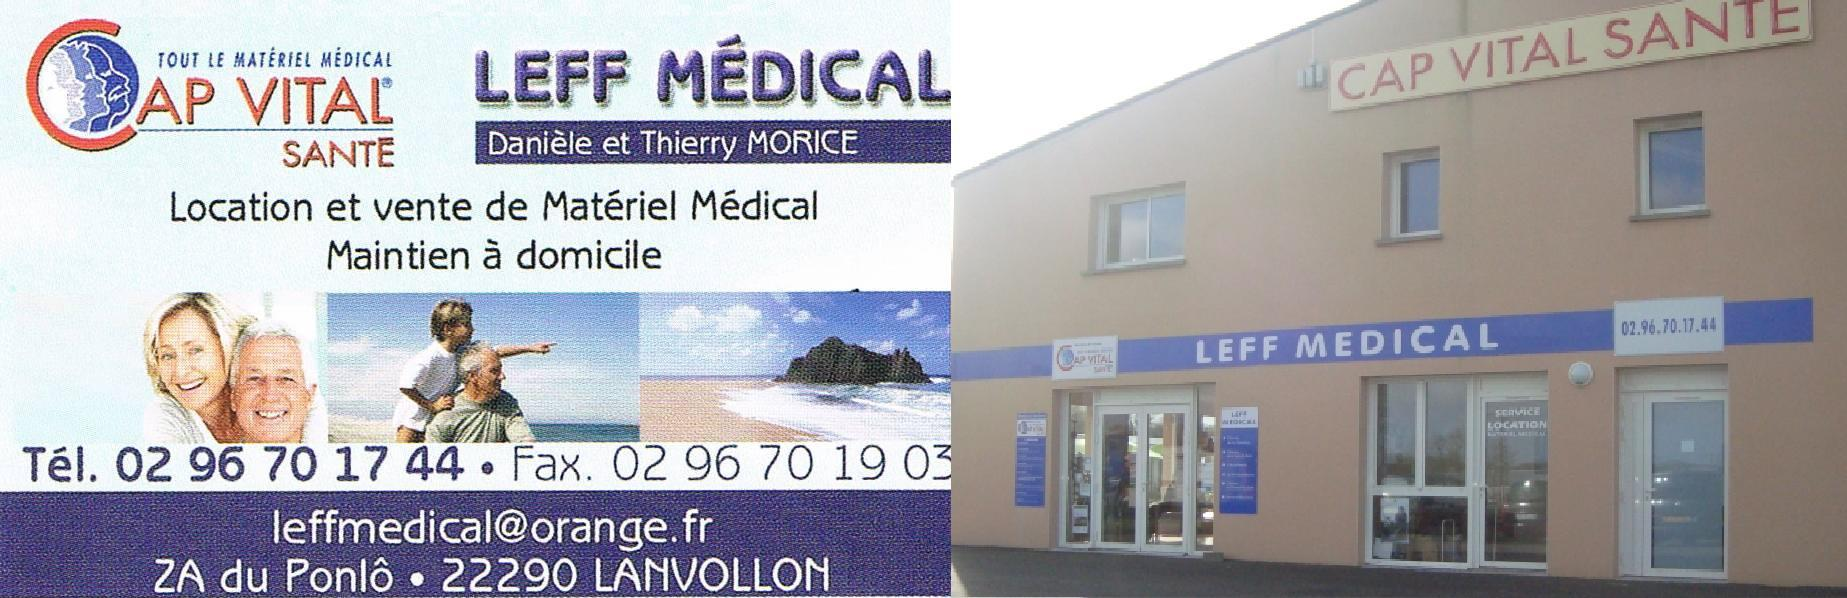 LEFF MEDICAL LANVOLLON